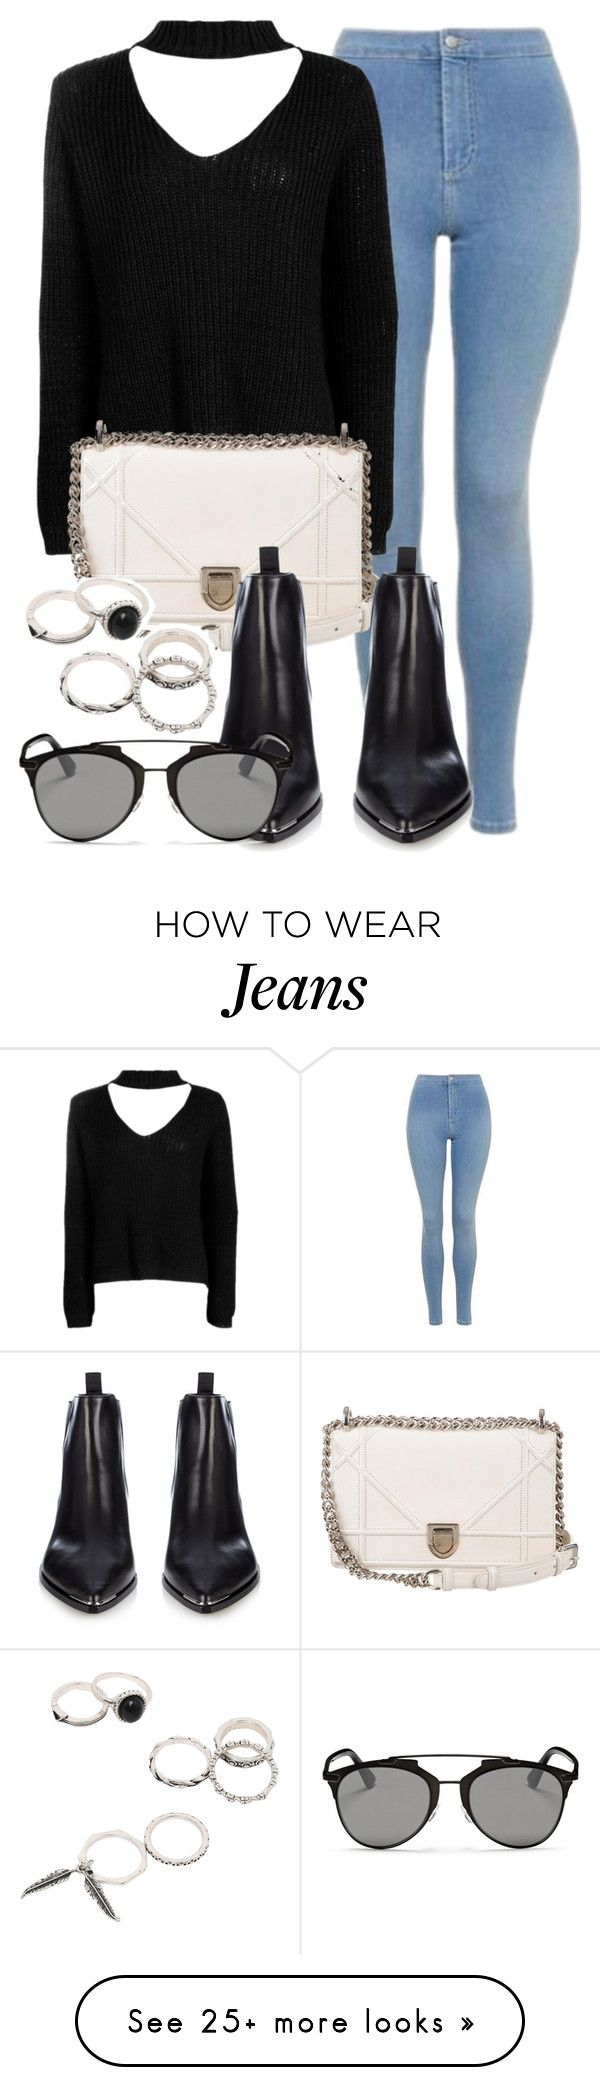 """""""Style #11269"""" by vany-alvarado on Polyvore featuring Topshop, Boohoo, Christian Dior and Acne Studios"""